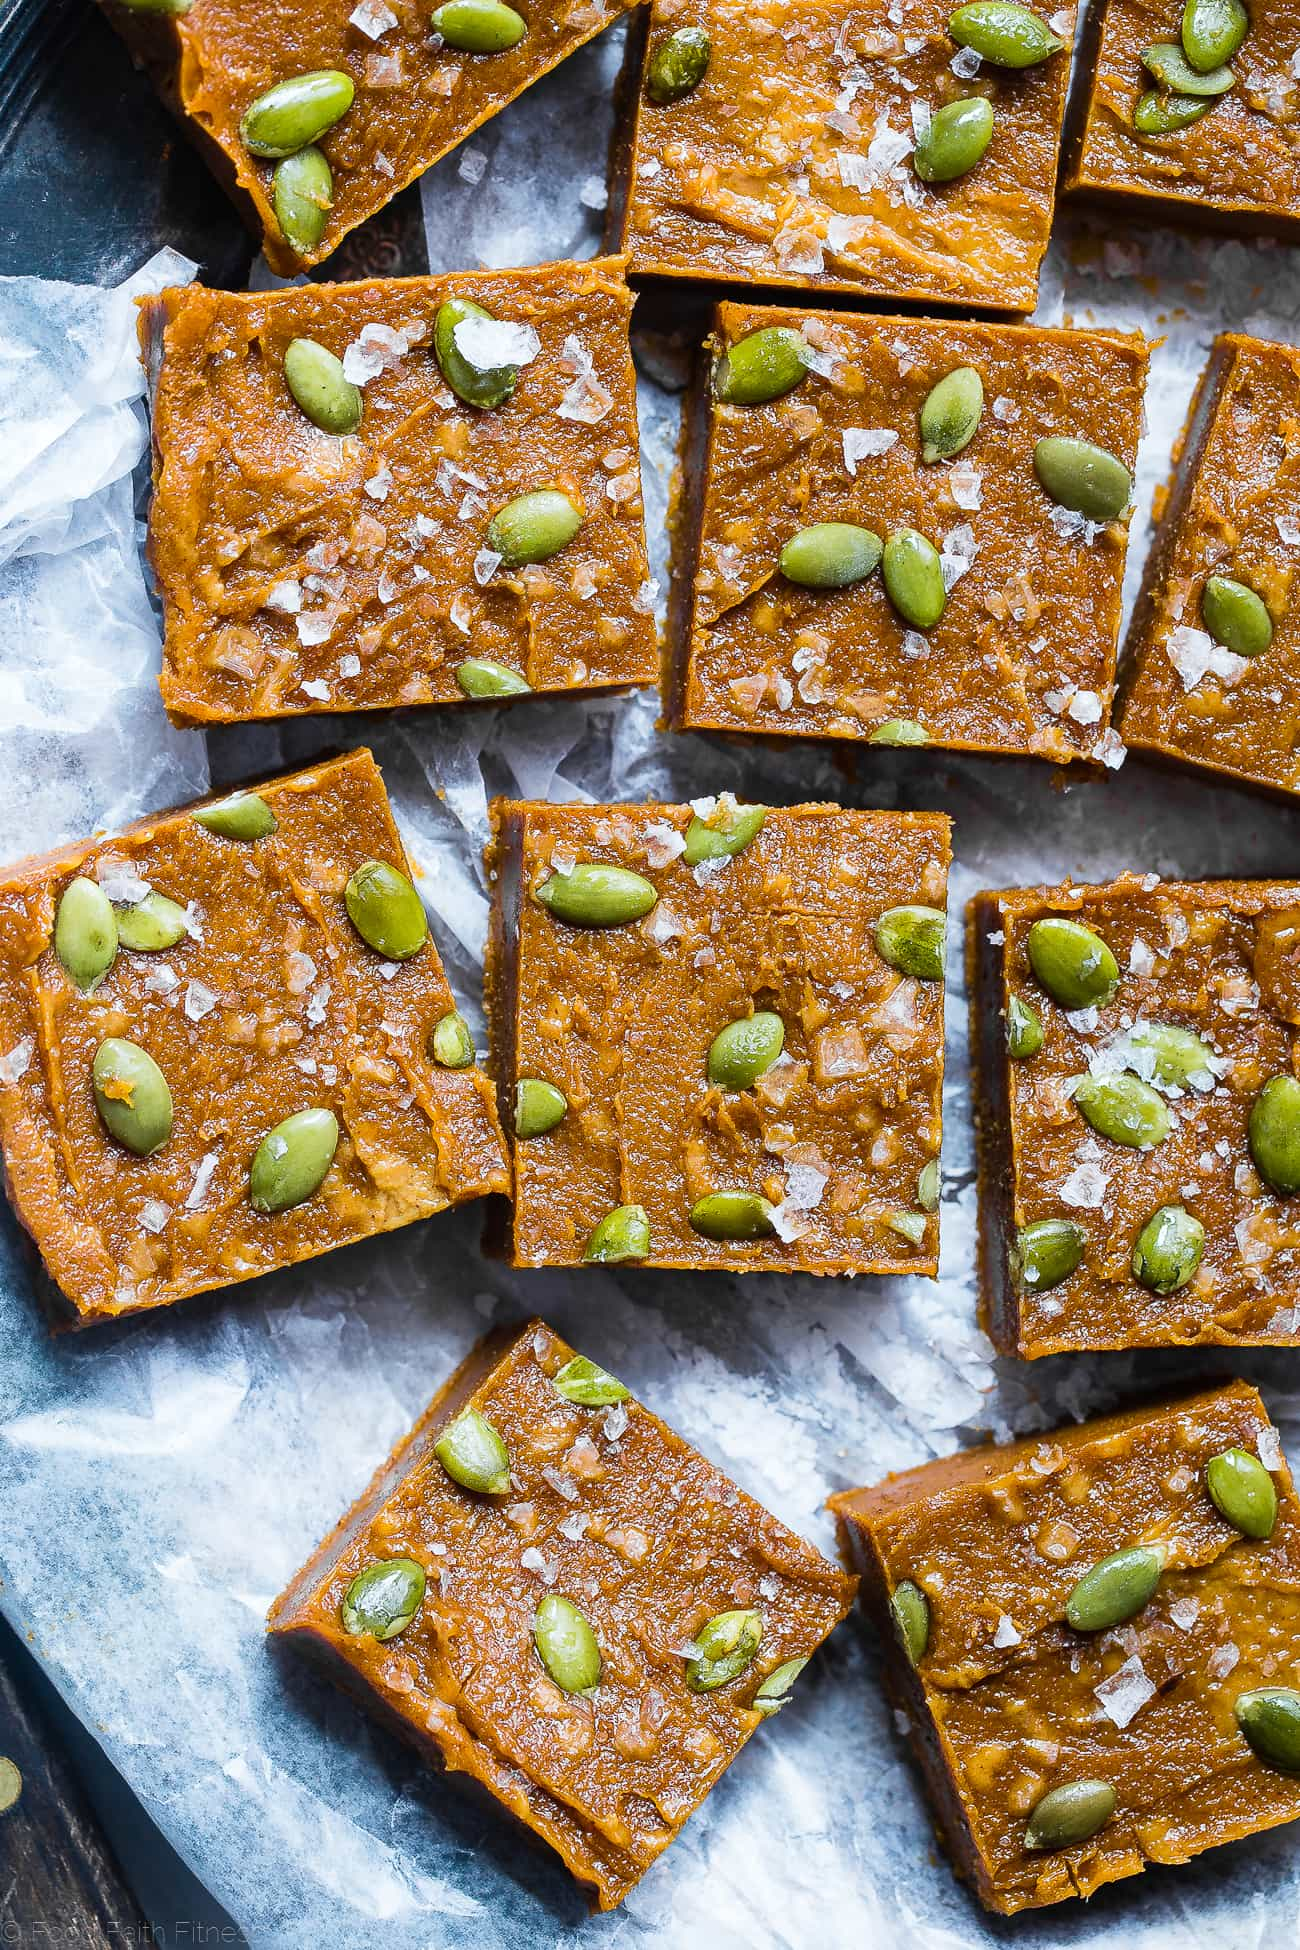 Sugar Free Vegan Pumpkin Freezer Fudge - This sugar free fudge requires only a few minutes to make and is naturally sweetened with dates! It's gluten, grain and dairy free and SO creamy! | Foodfaithfitness.com | @FoodFaithFit